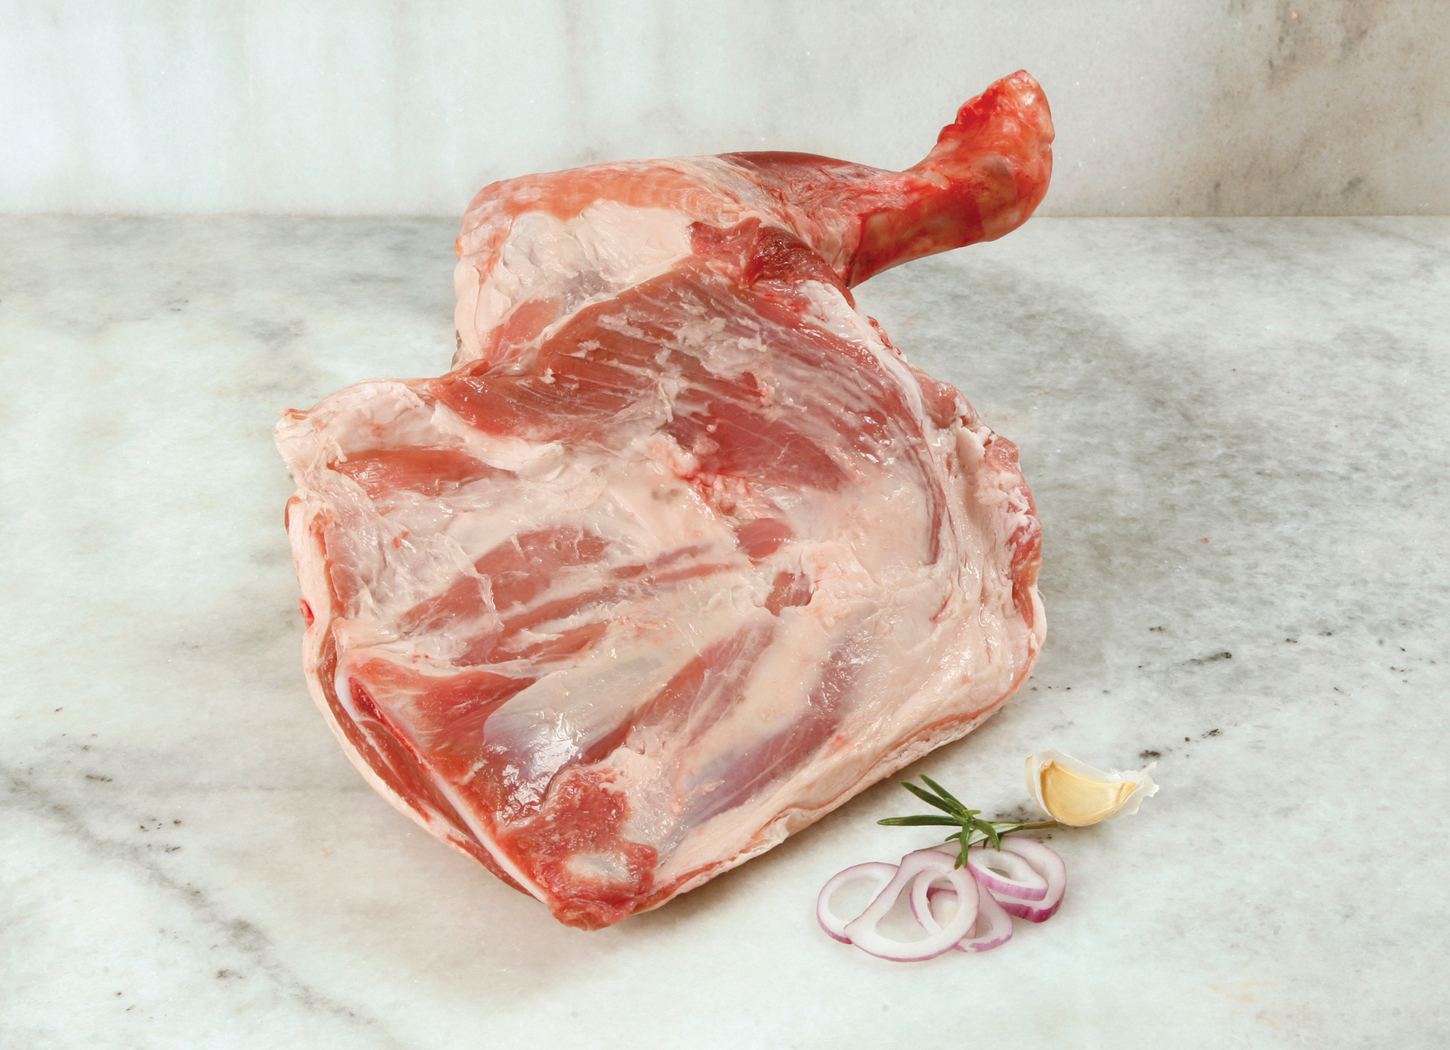 Lamb Foreshank A Butcher S Guide To Cuts Of Lamb Scotsman Food And Drink